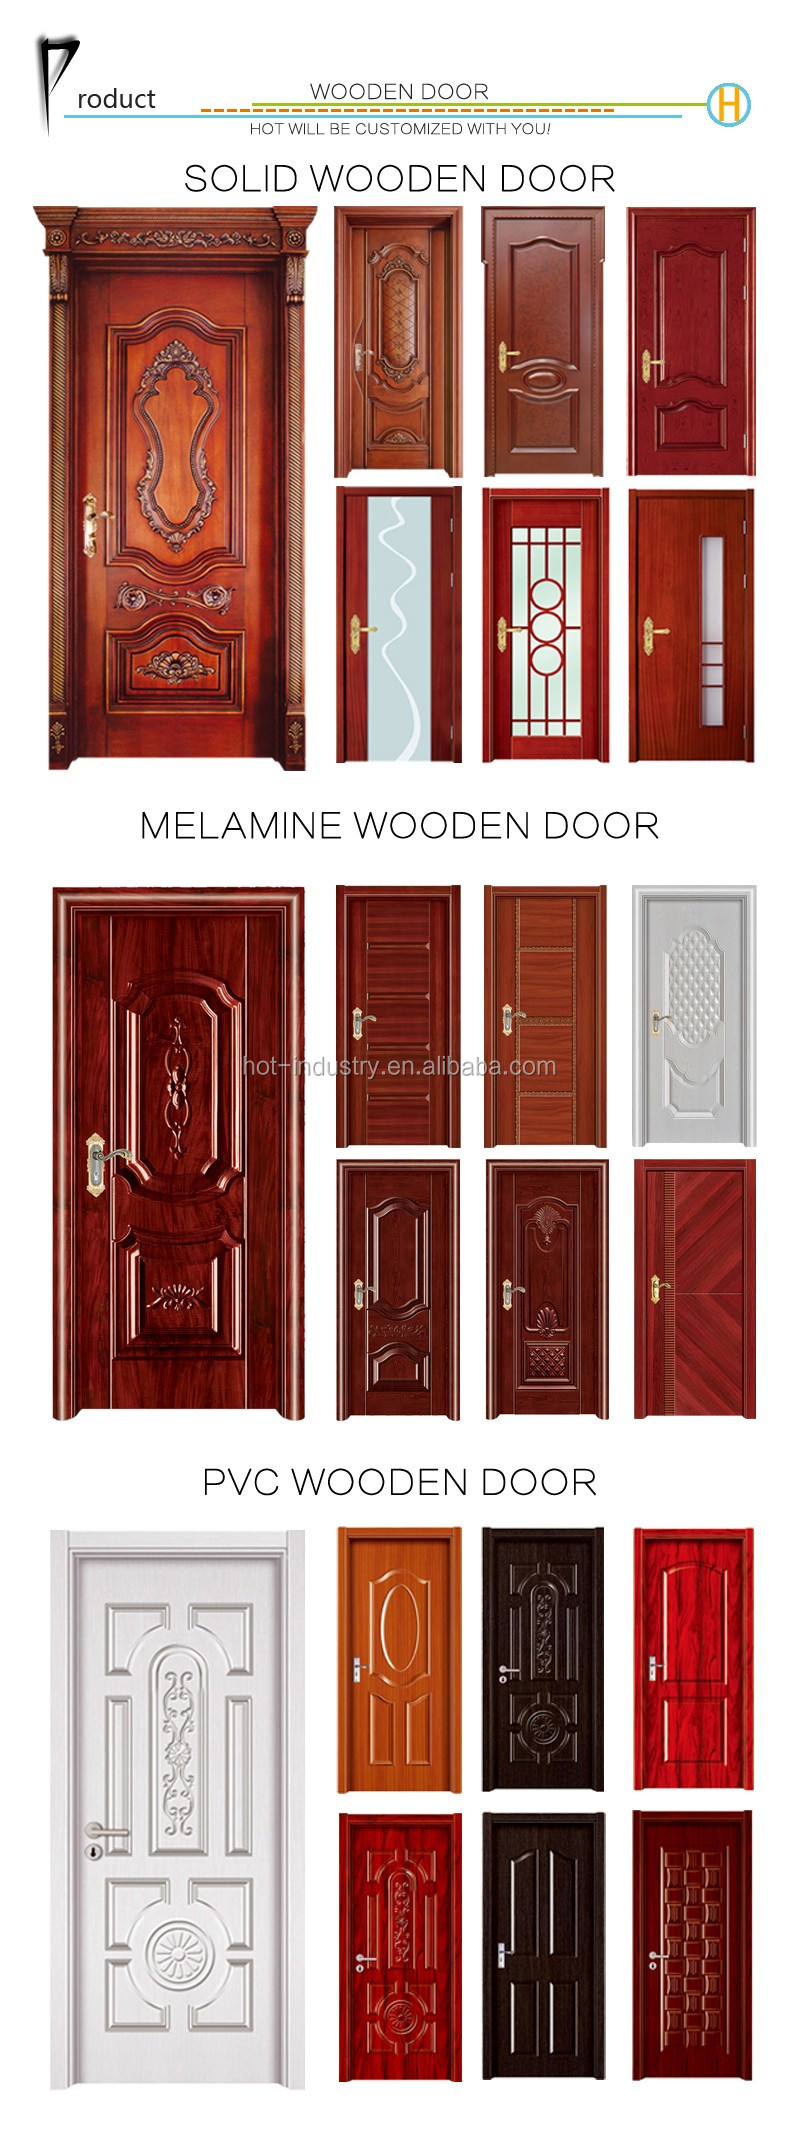 2018 Latest Design Interior Melamine Wooden Door Teak Wood Main Door Designs Modern Wood Door Designs Buy Interior Wooden Door Teak Wood Main Door